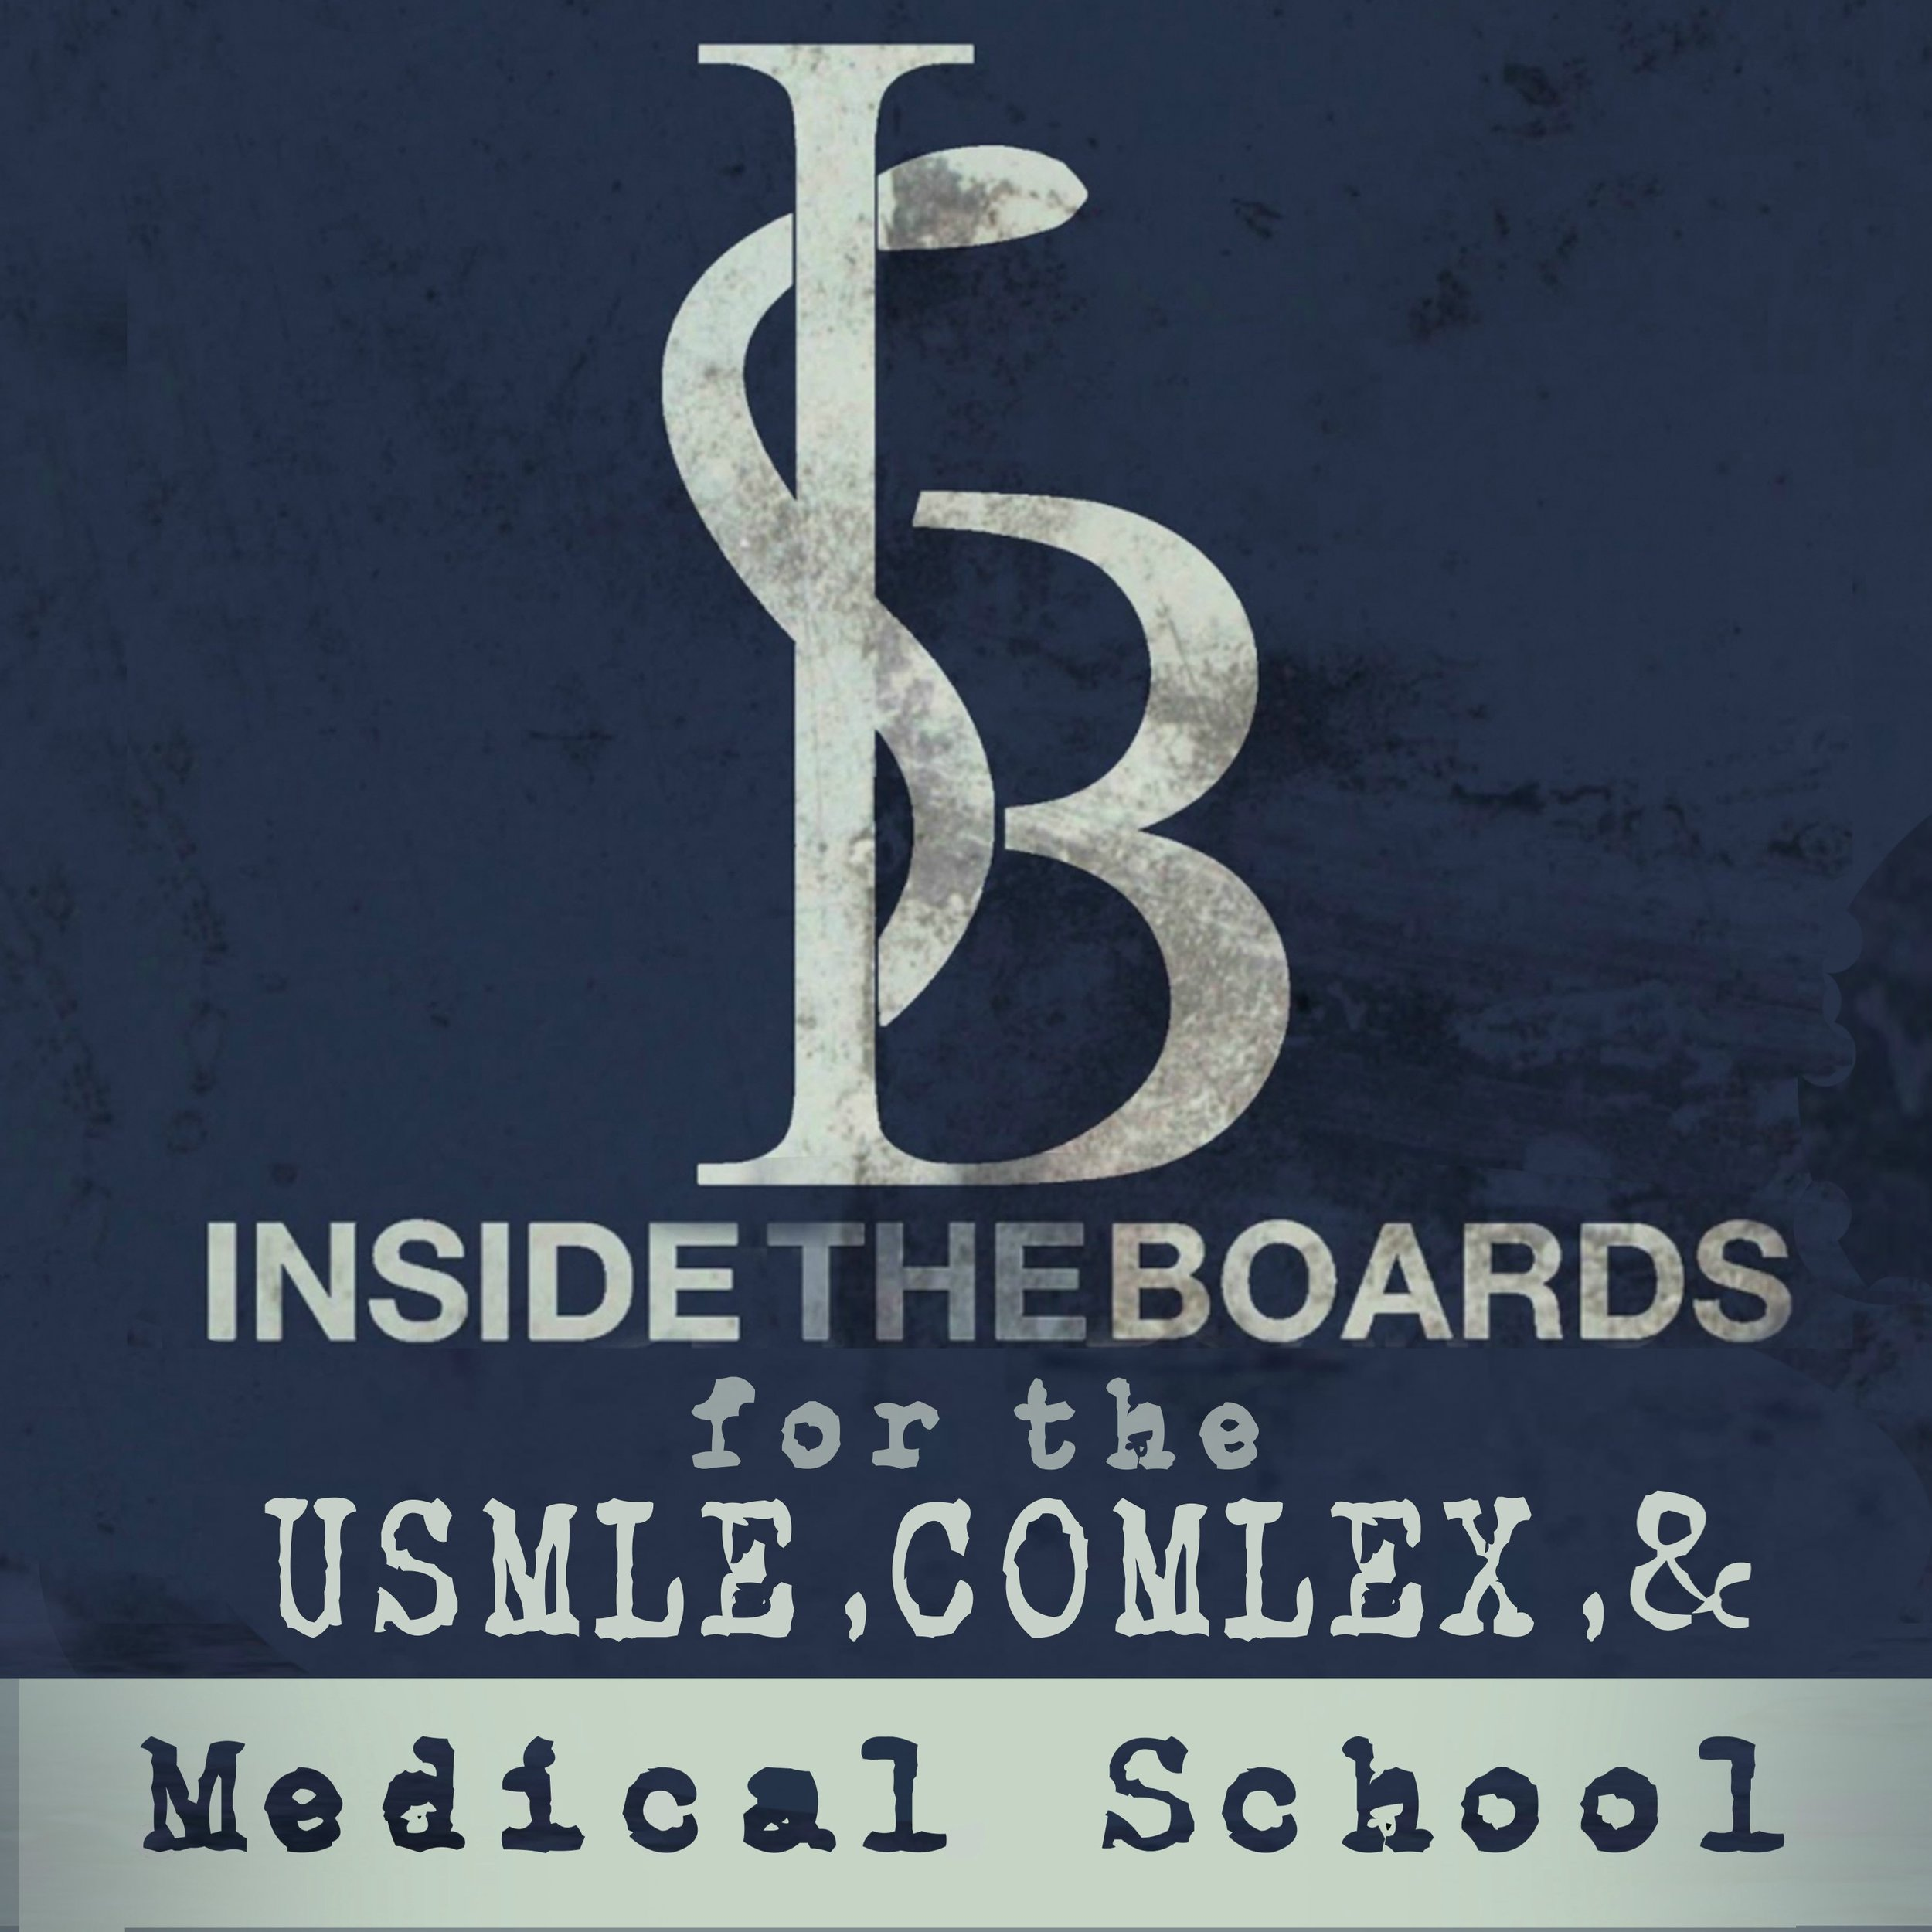 InsideTheBoards Podcast - Dr. O'Connell's first episode of many with the ITB team. He discusses his journey into test-preparation authorship, reveals which subject he struggled with in medical school, and reviewst how he'd work through a USMLE Step 2 test question, and more.